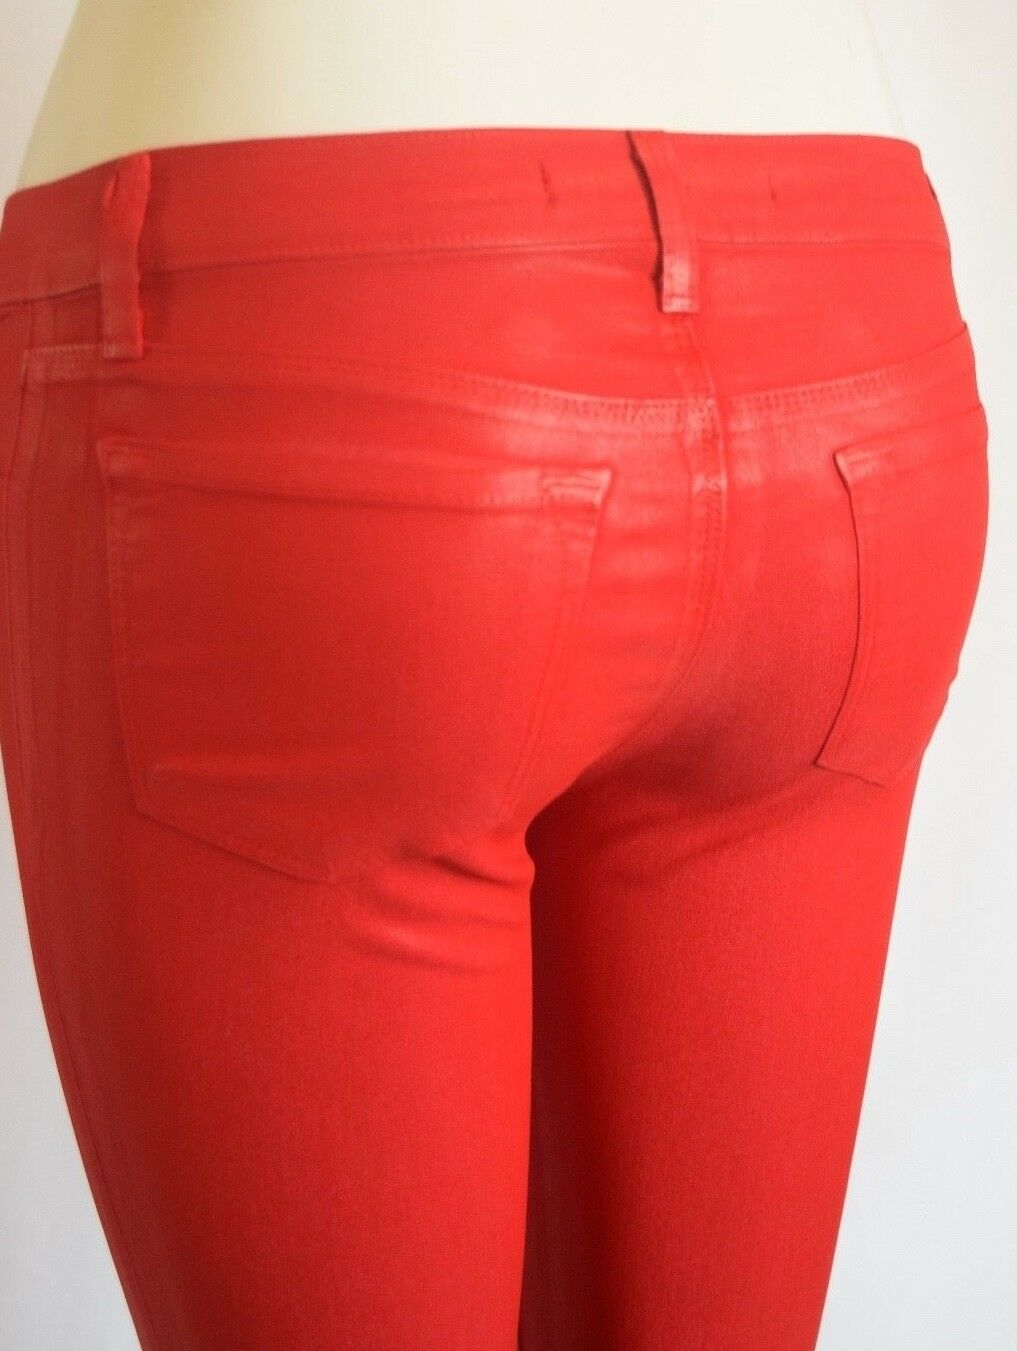 NEW J BRAND 815 SUPER SKINNY Low Rise Jeans Woman 29 in COATED JADE RED D3